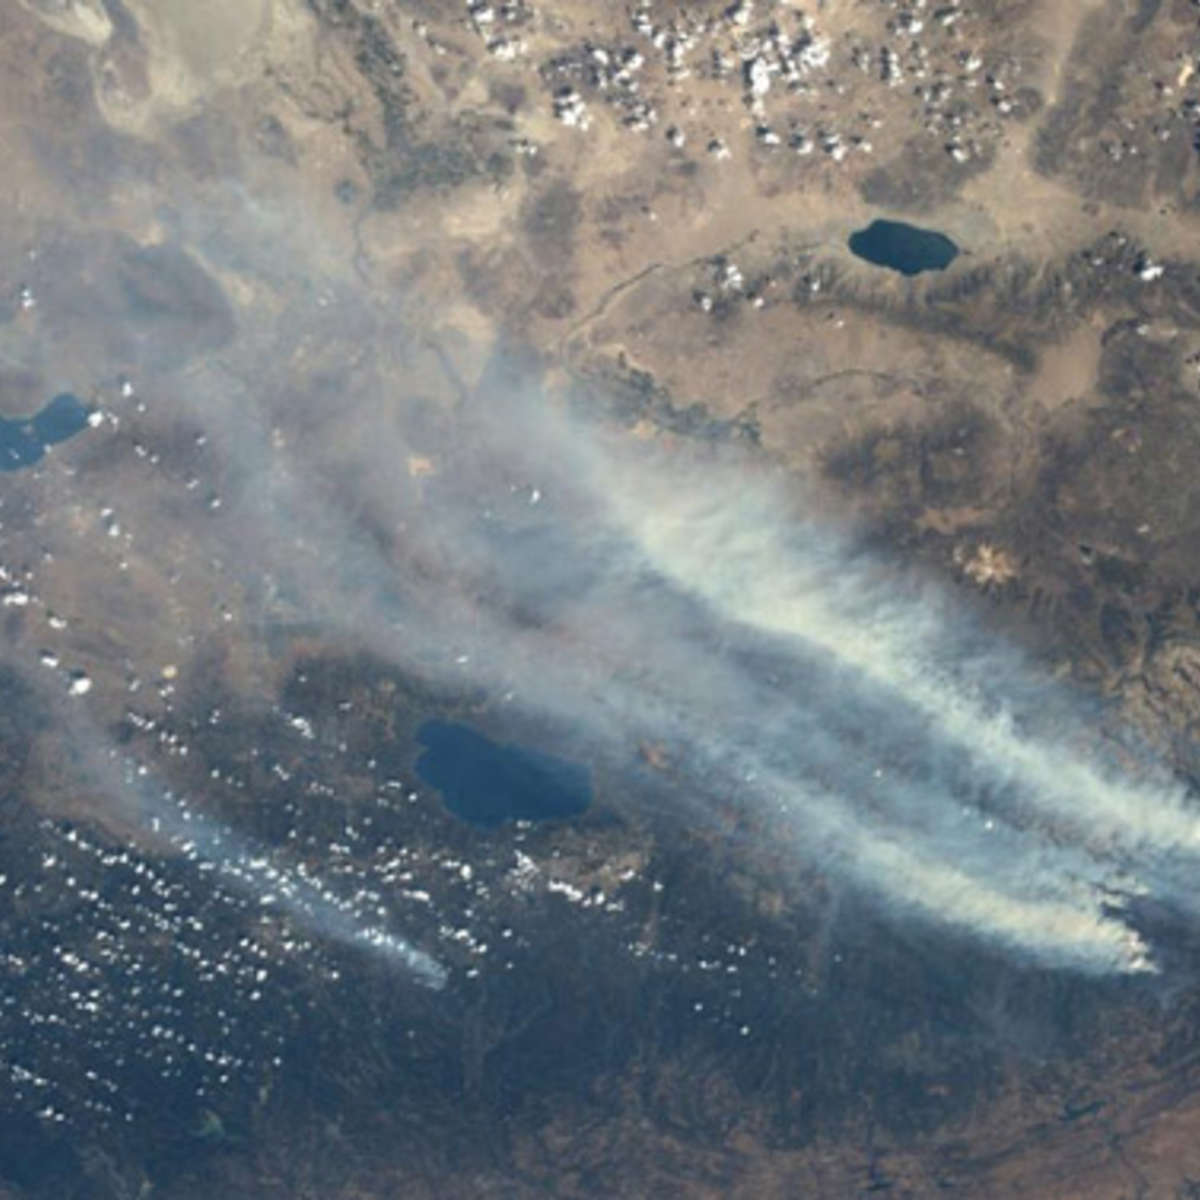 iss_california_rimfire_aug26.jpg